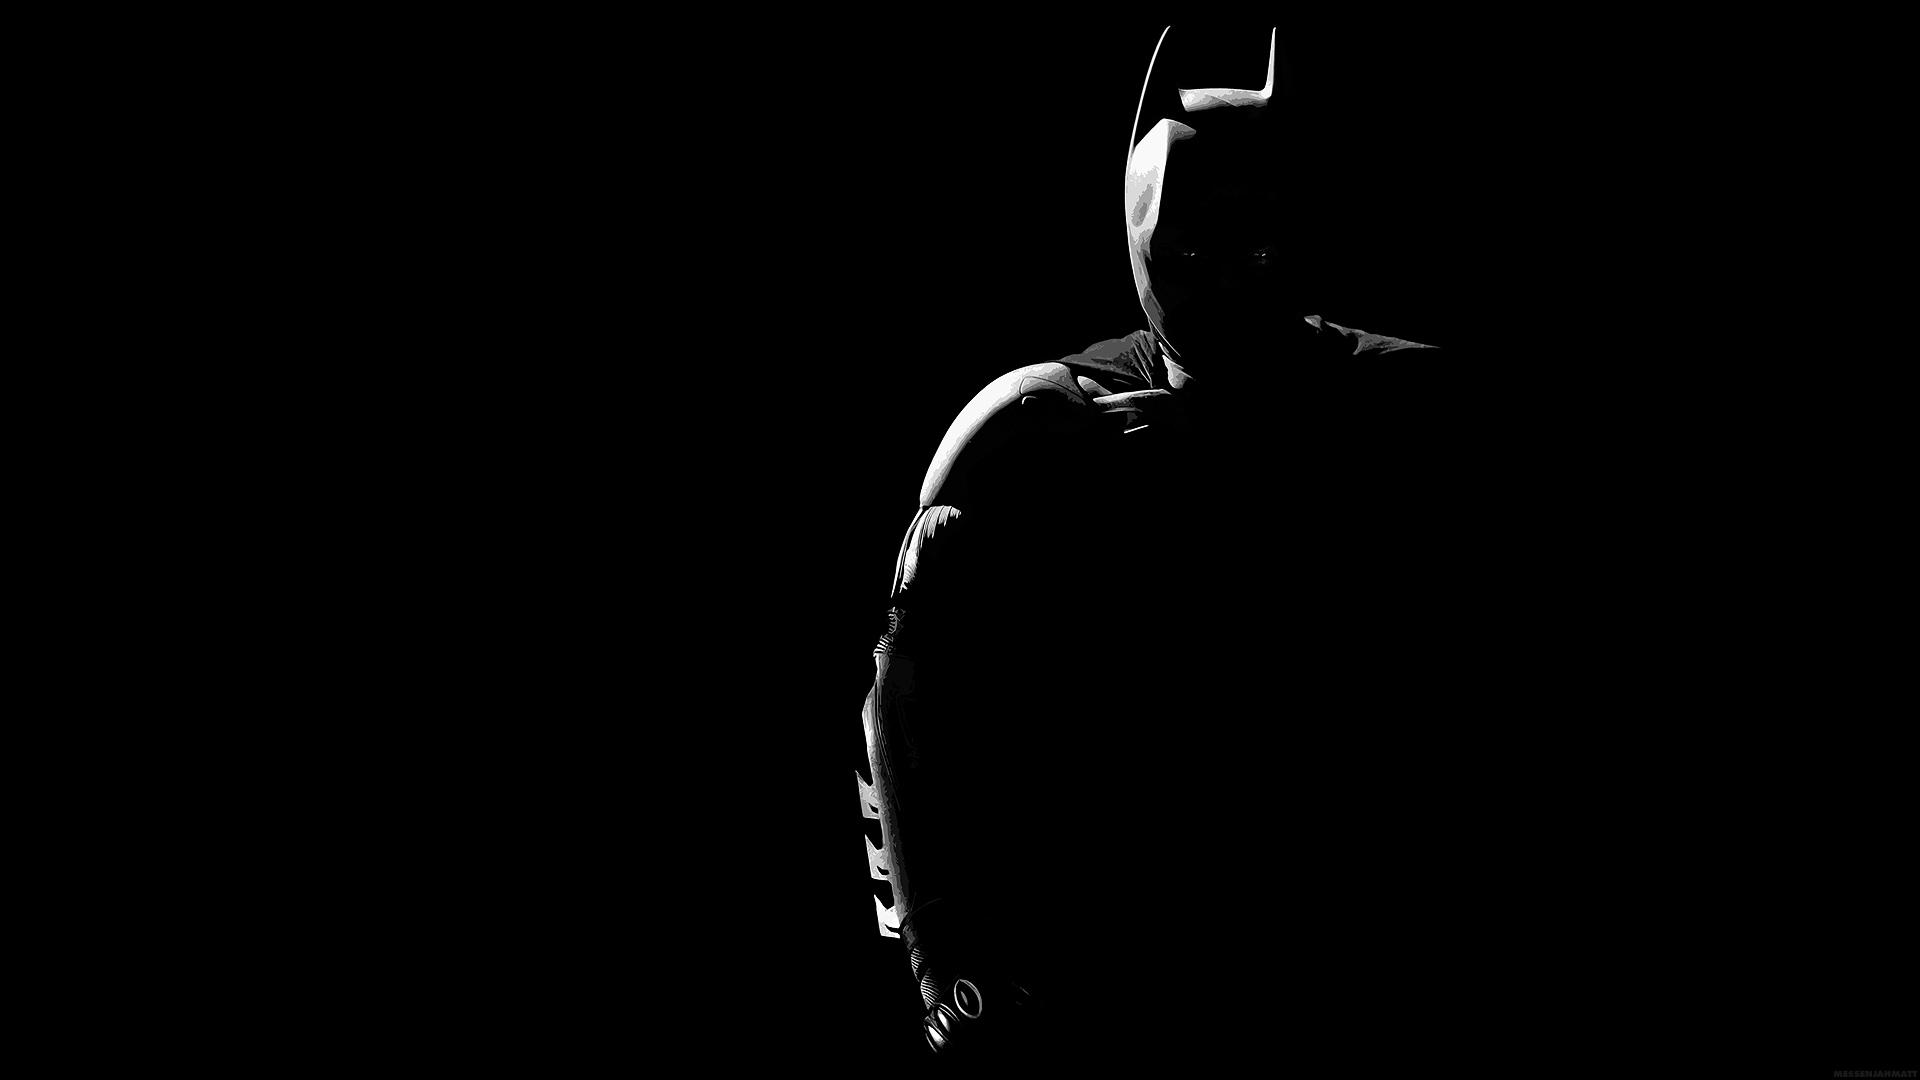 Fantastic Wallpaper Macbook Batman - batman-wallpaper-9712-10064-hd-wallpapers  Image_1002953.jpg